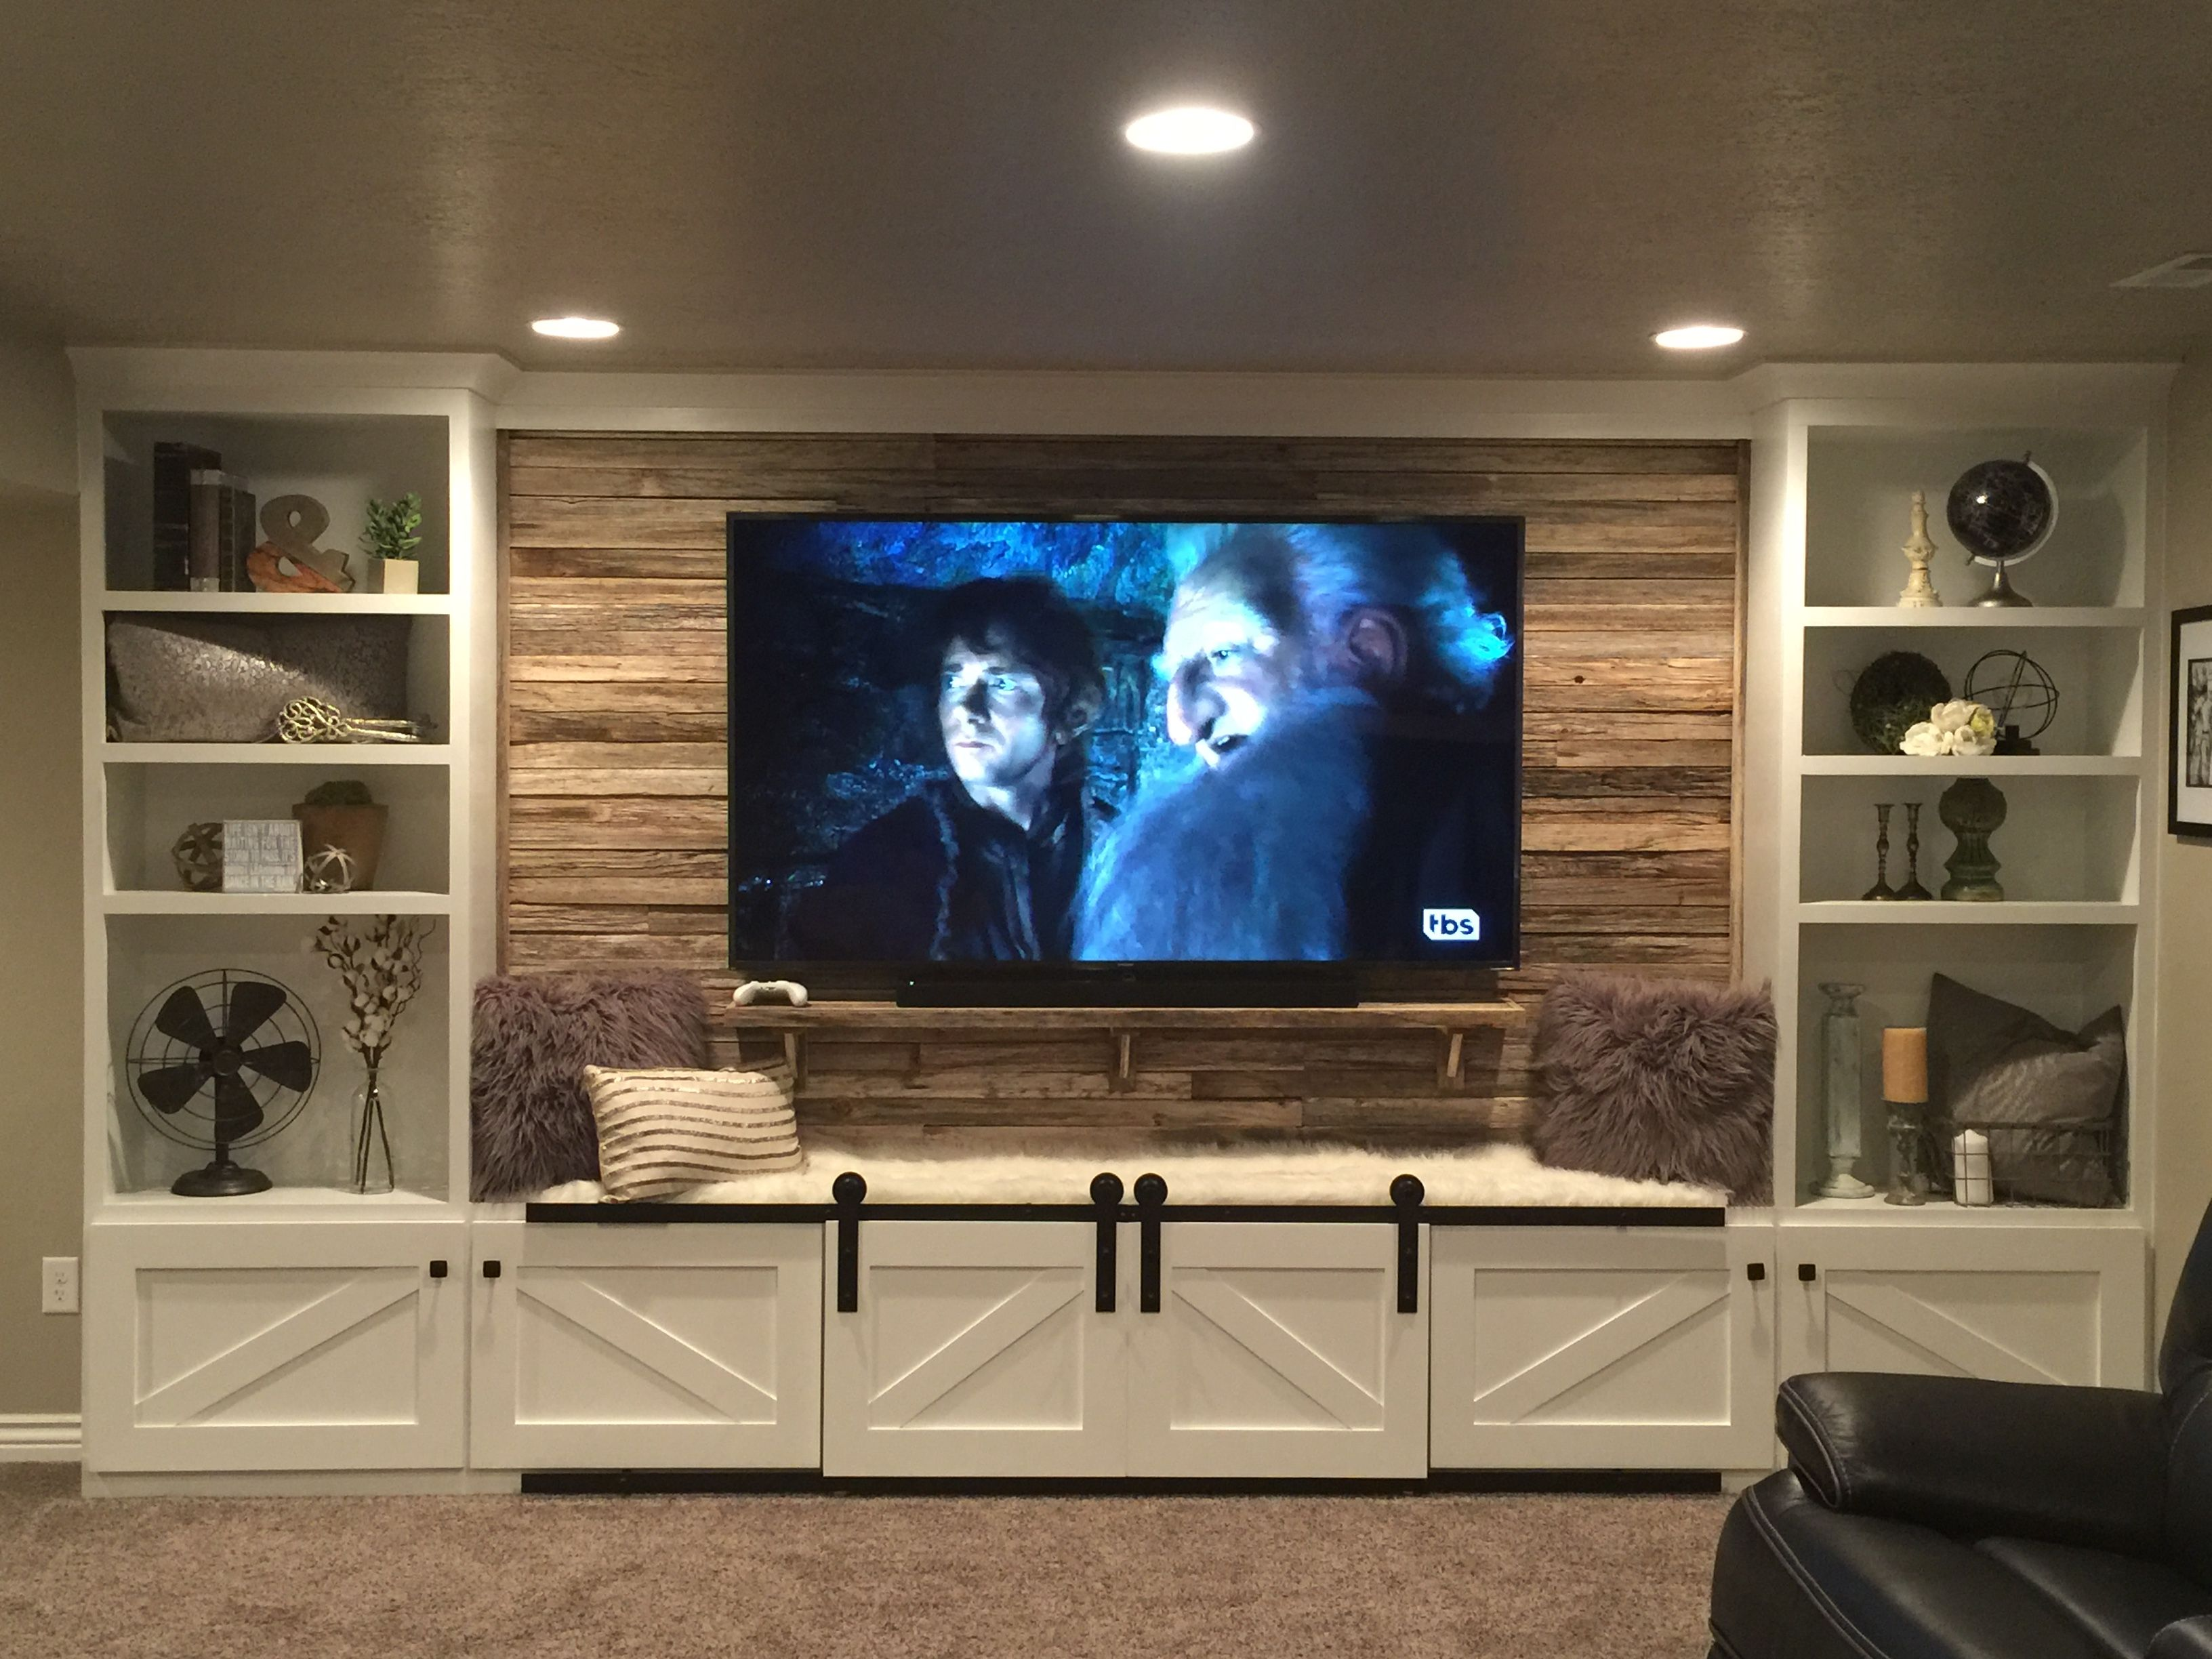 living room entertainment wall ideas on how to decorate a 17 diy center and designs for your new home our hand crafted built in with 75 yr old reclaimed wood behind tv added little barn door look at the bottom too